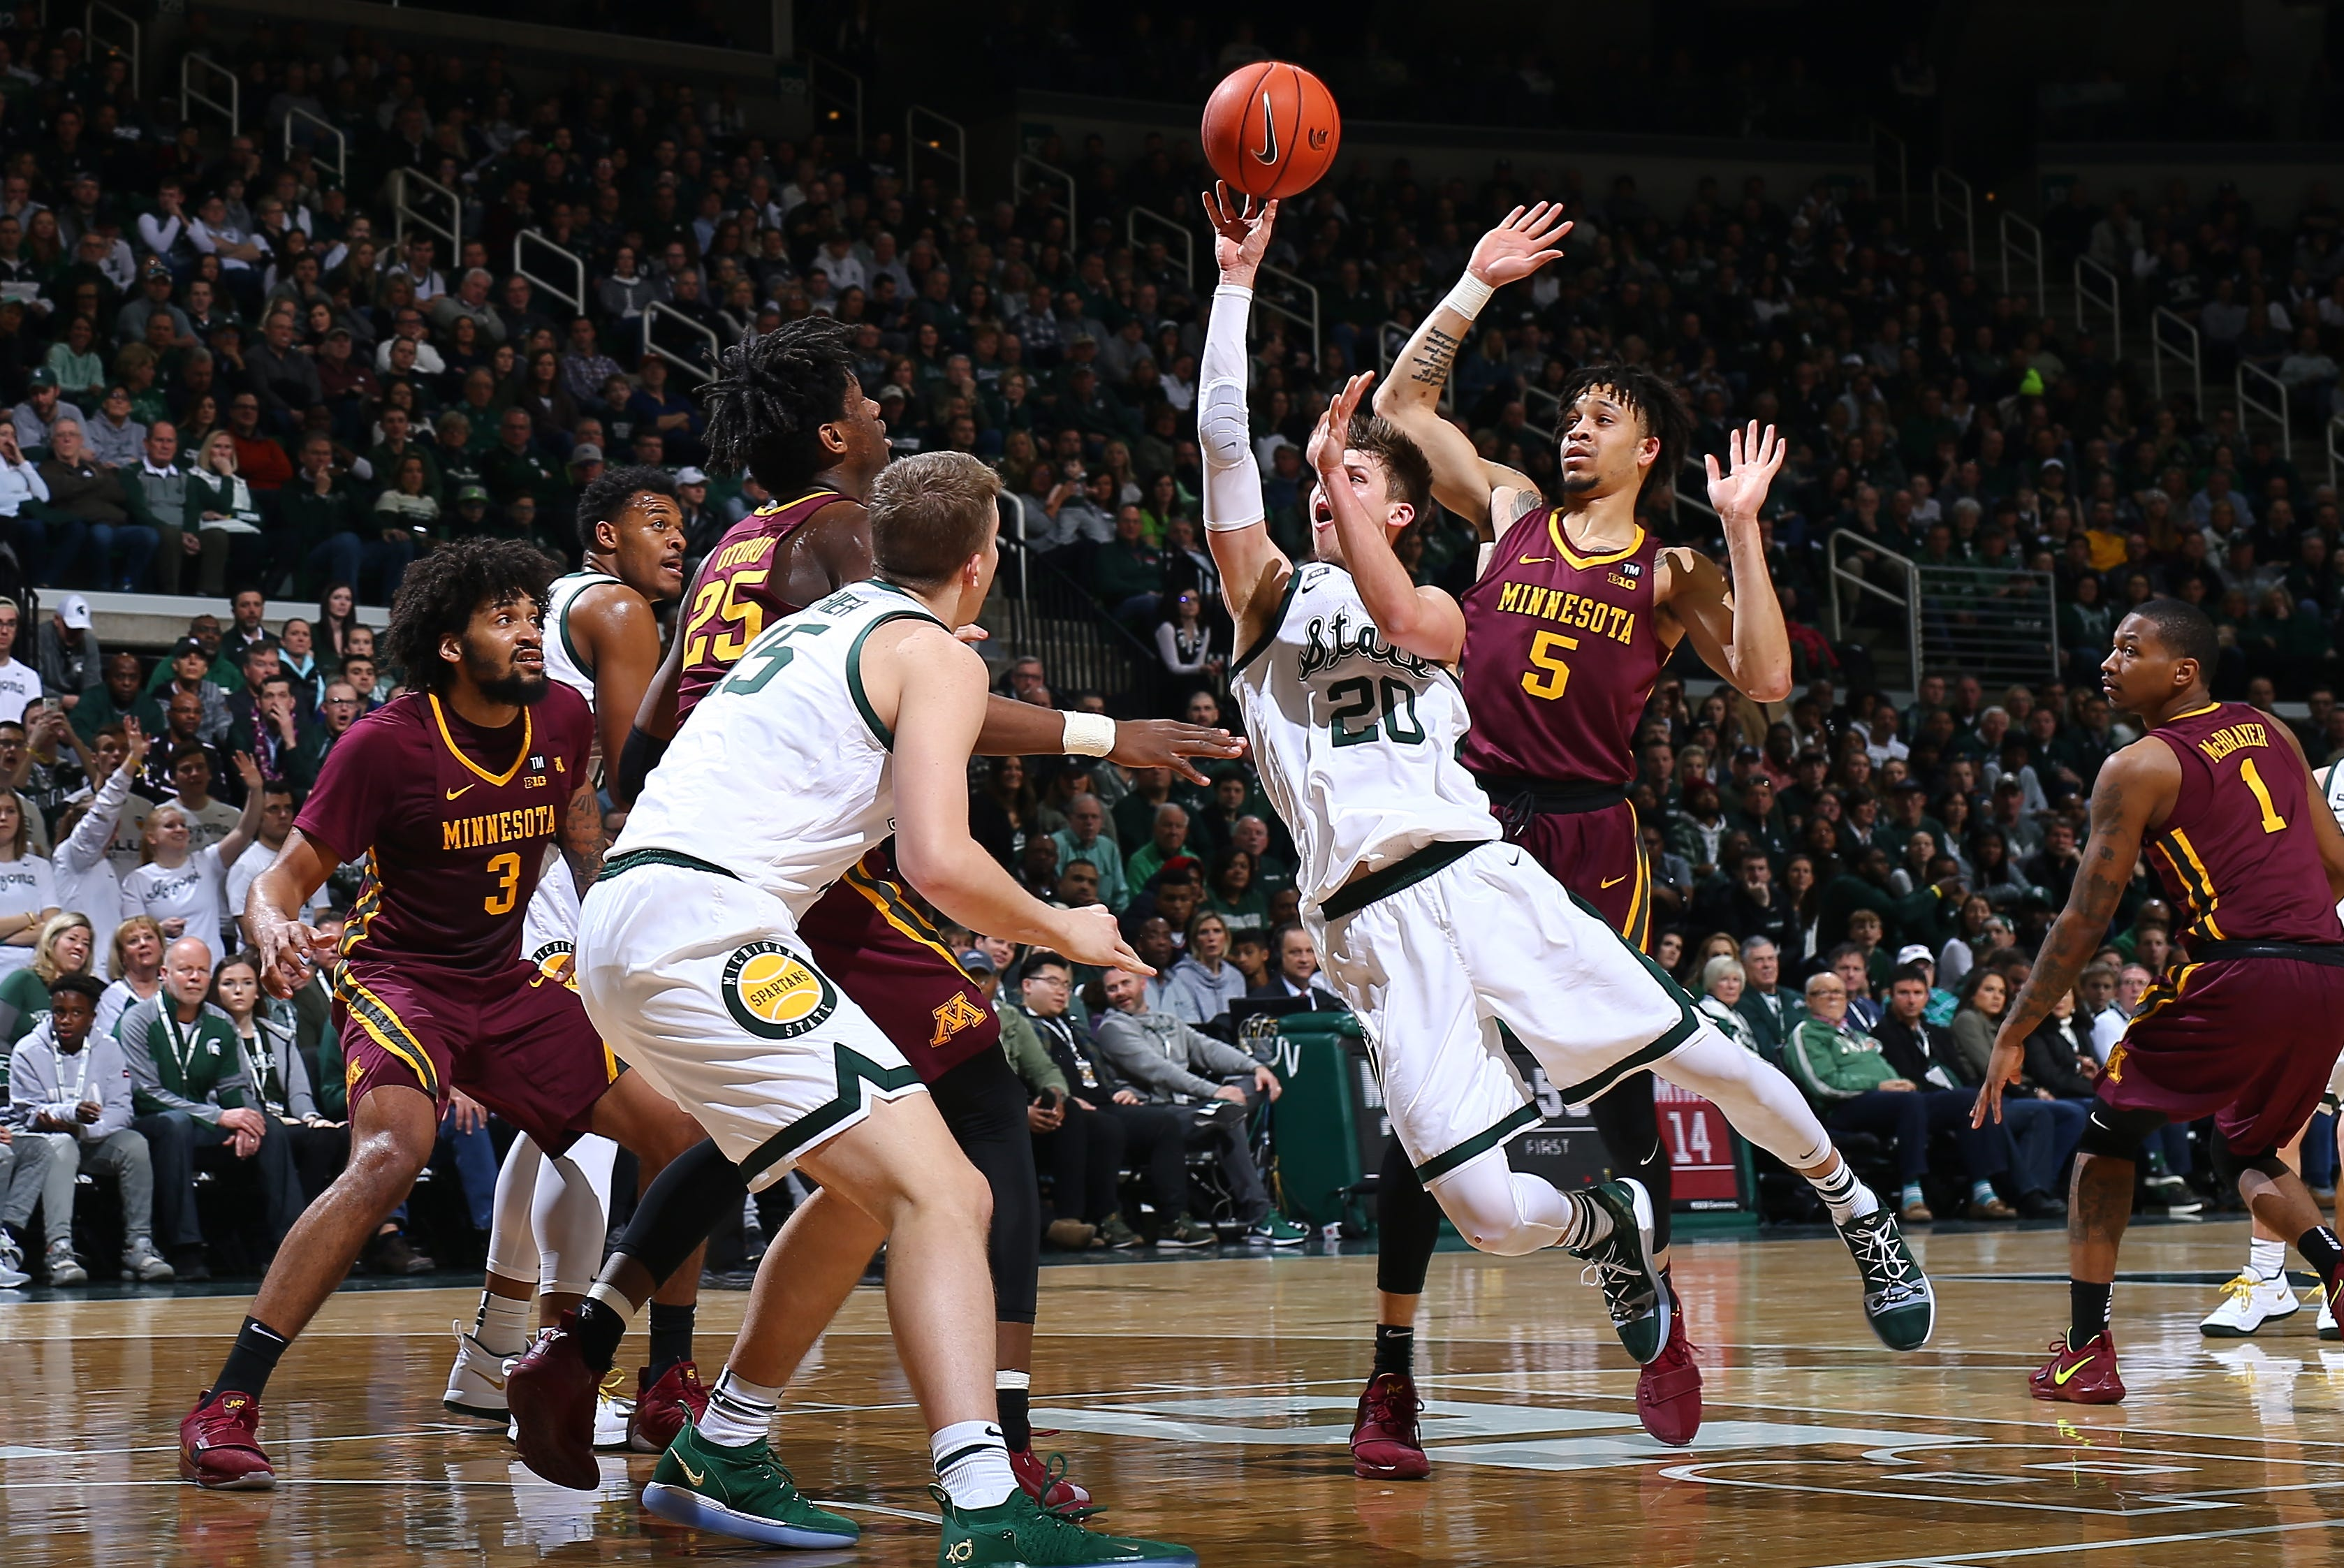 Michigan State's Matt McQuaid shoots the ball and draws a foul from Minnesota's Amir Coffey in the first half at Breslin Center on Saturday, Feb. 9, 2019, in East Lansing.